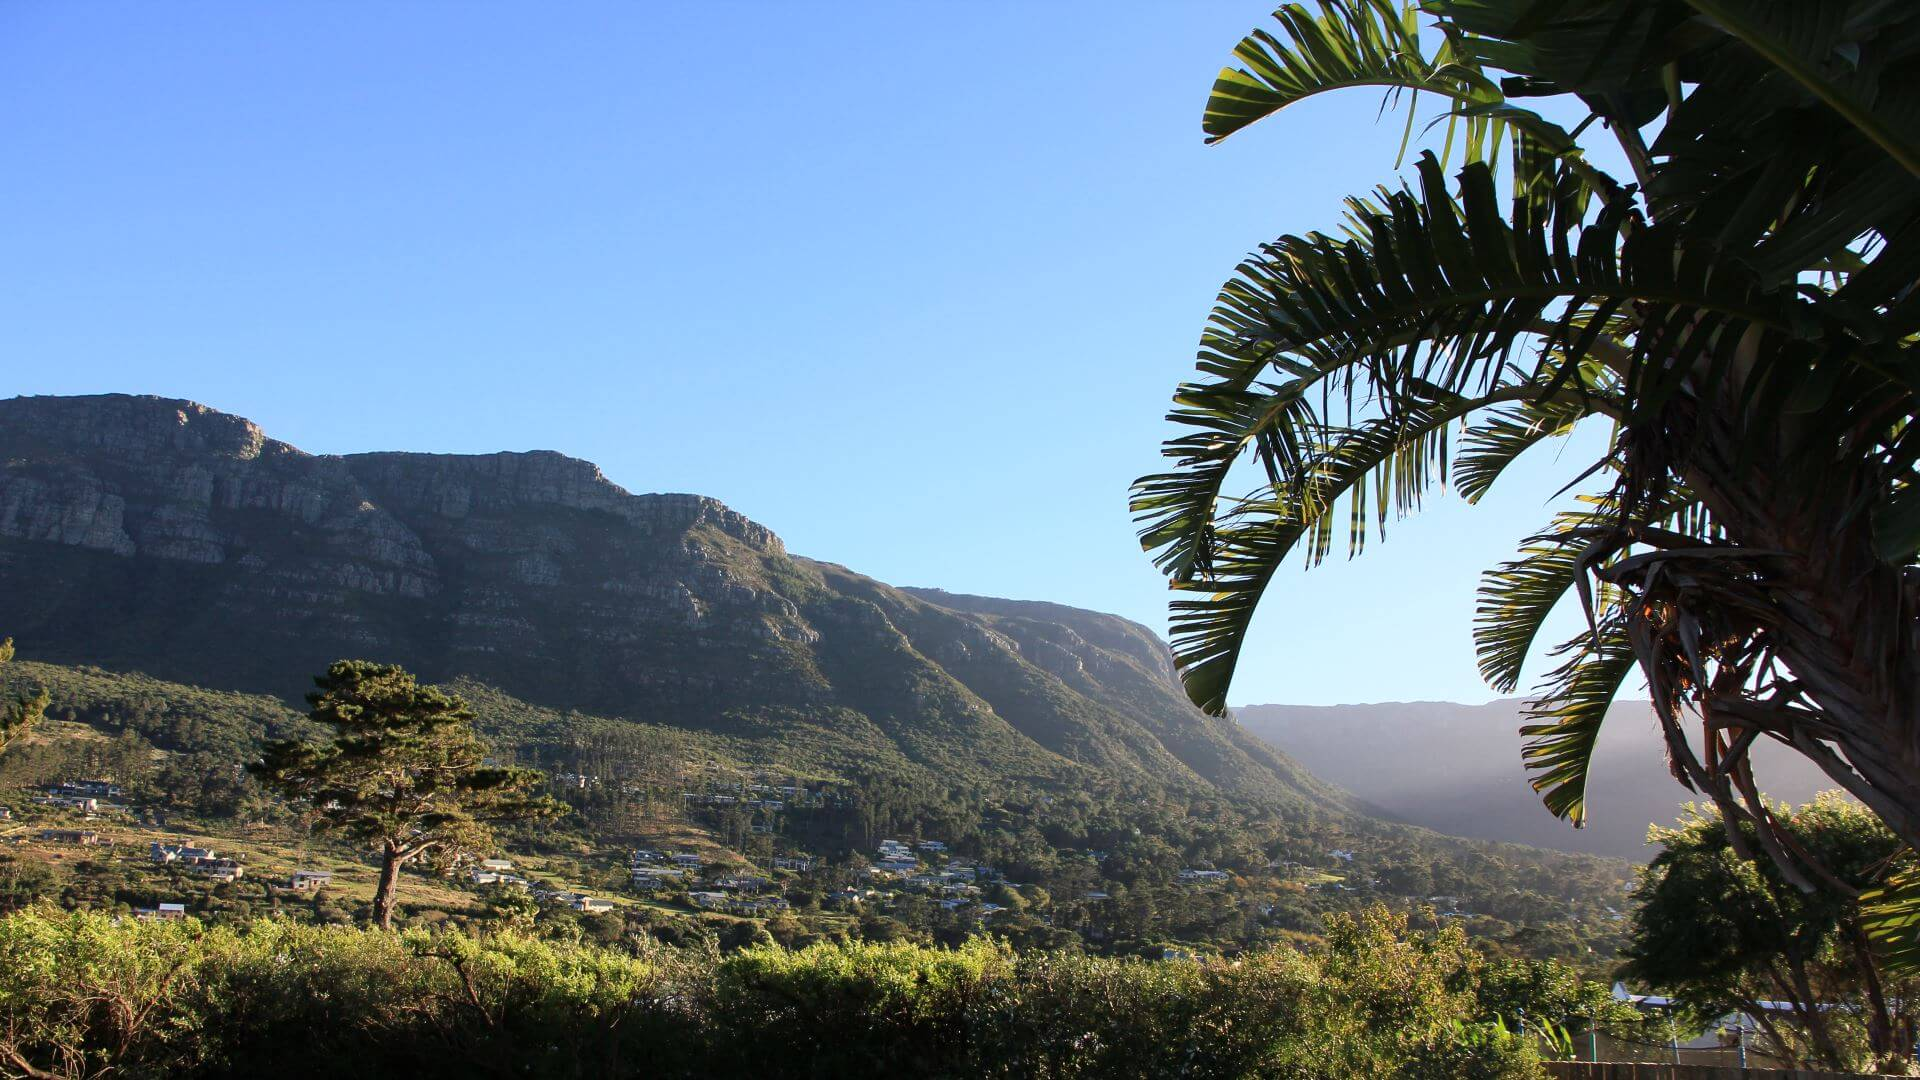 View on Table Mountain from the country side, Cape Town, South Africa